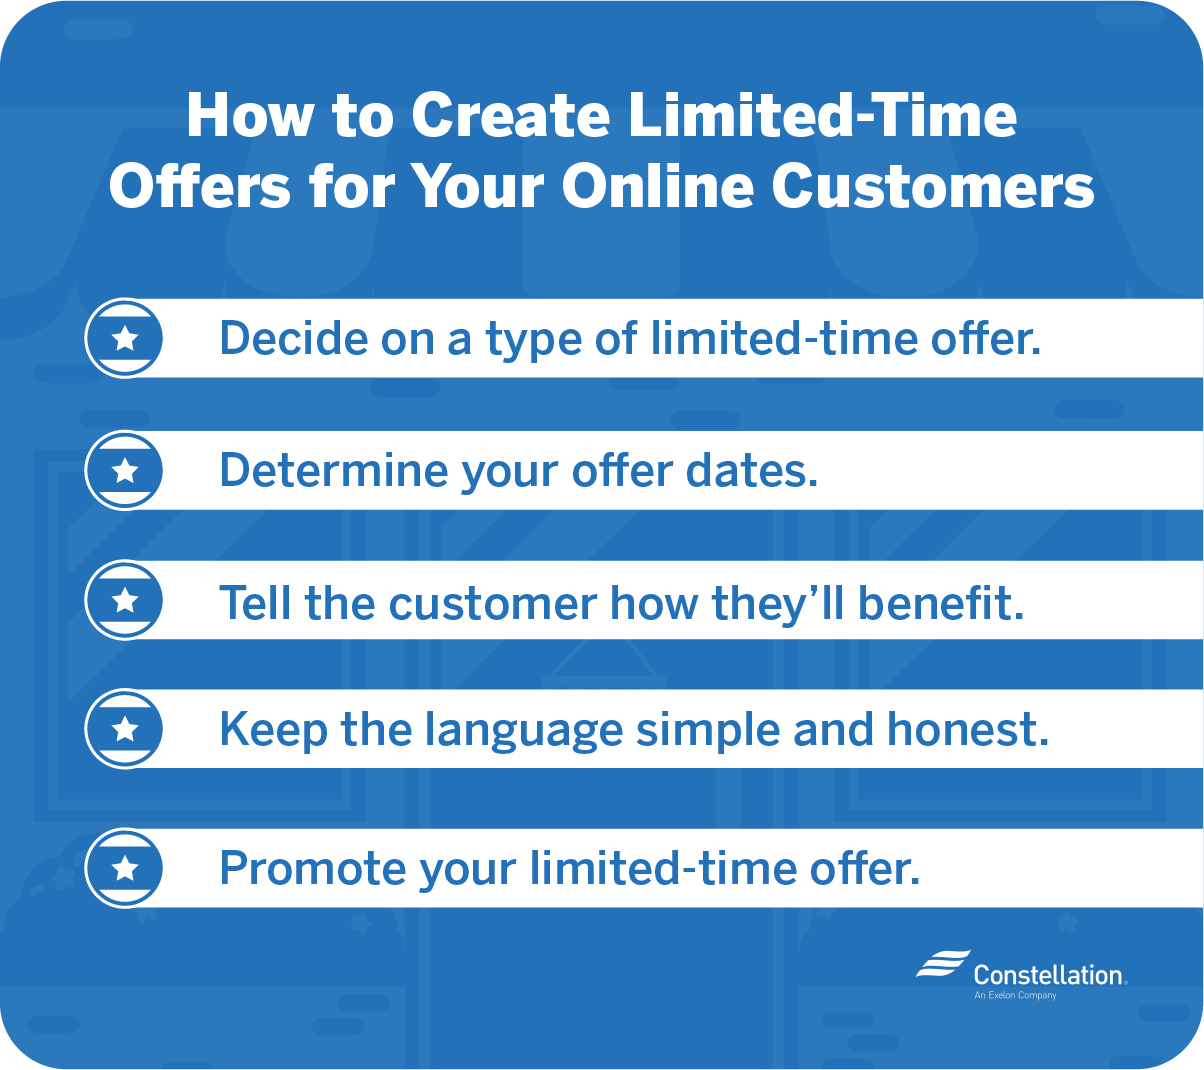 Creating limited-time offers for your online customers